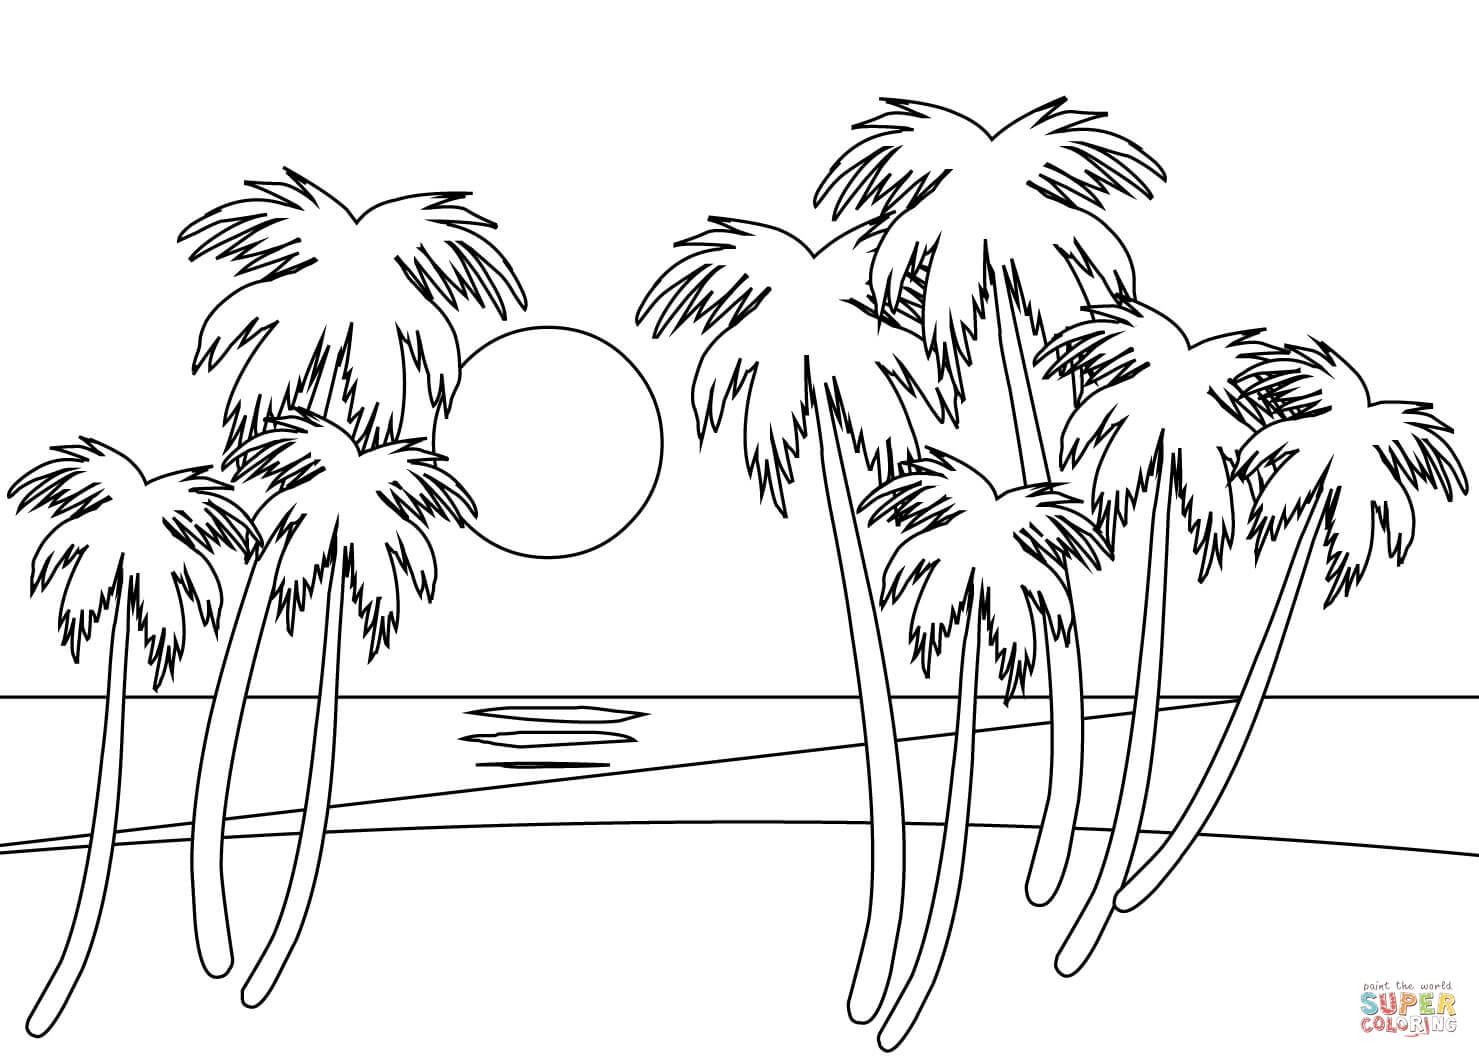 Tropical Beach Coloring Page | Free Printable Coloring Pages - Free Printable Beach Coloring Pages